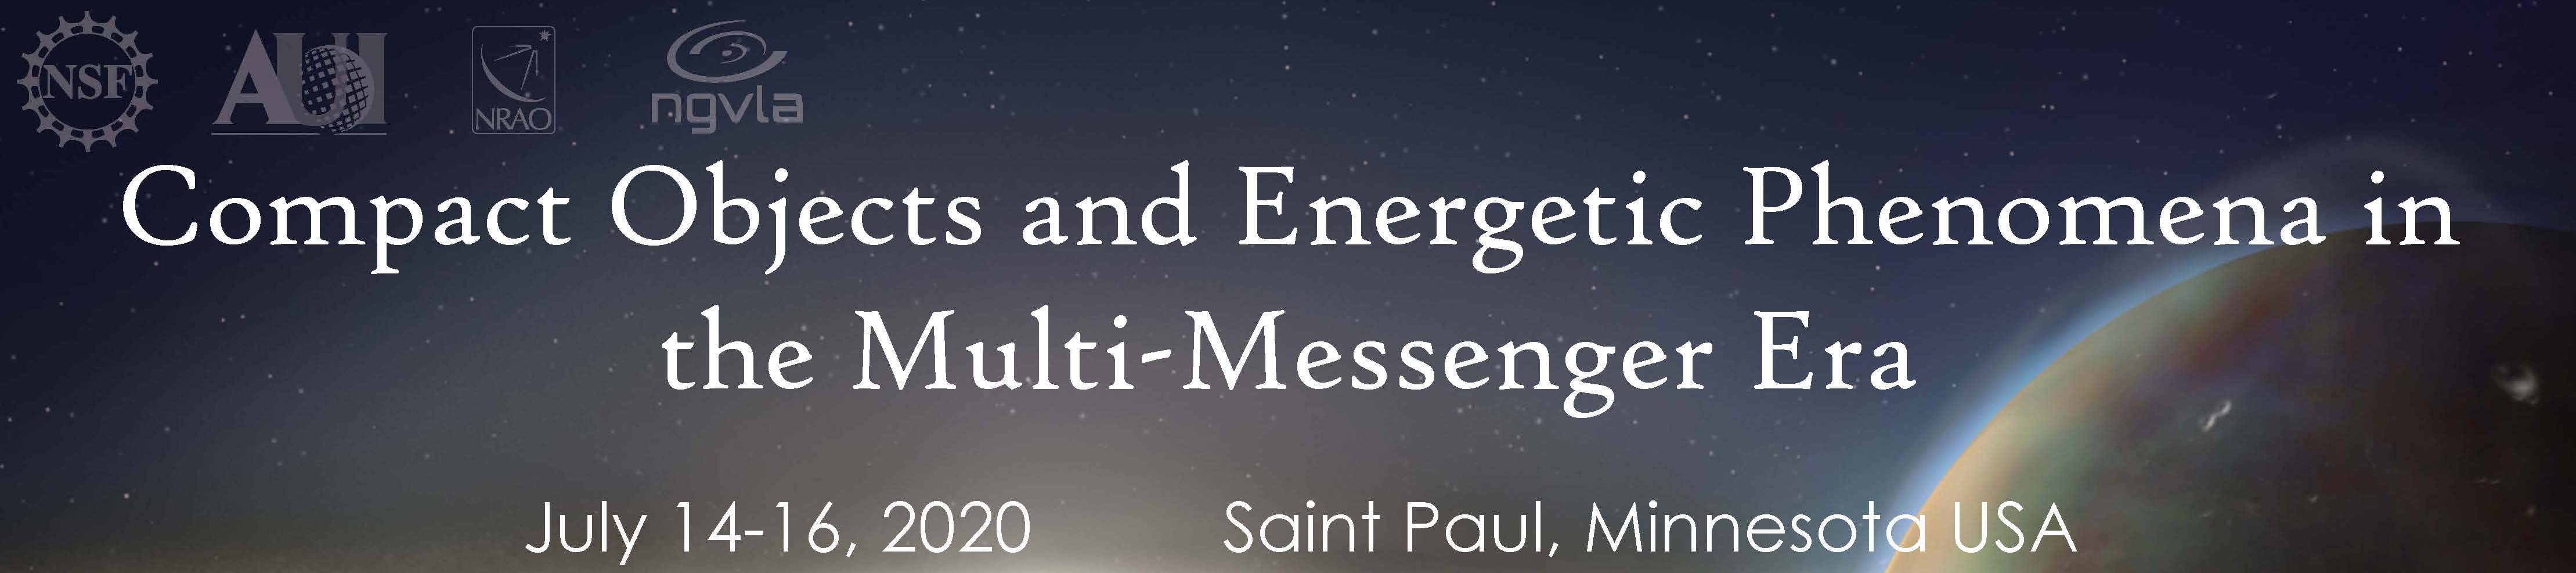 Compact Objects and Energetic Phenomena in the Multi-Messenger Era